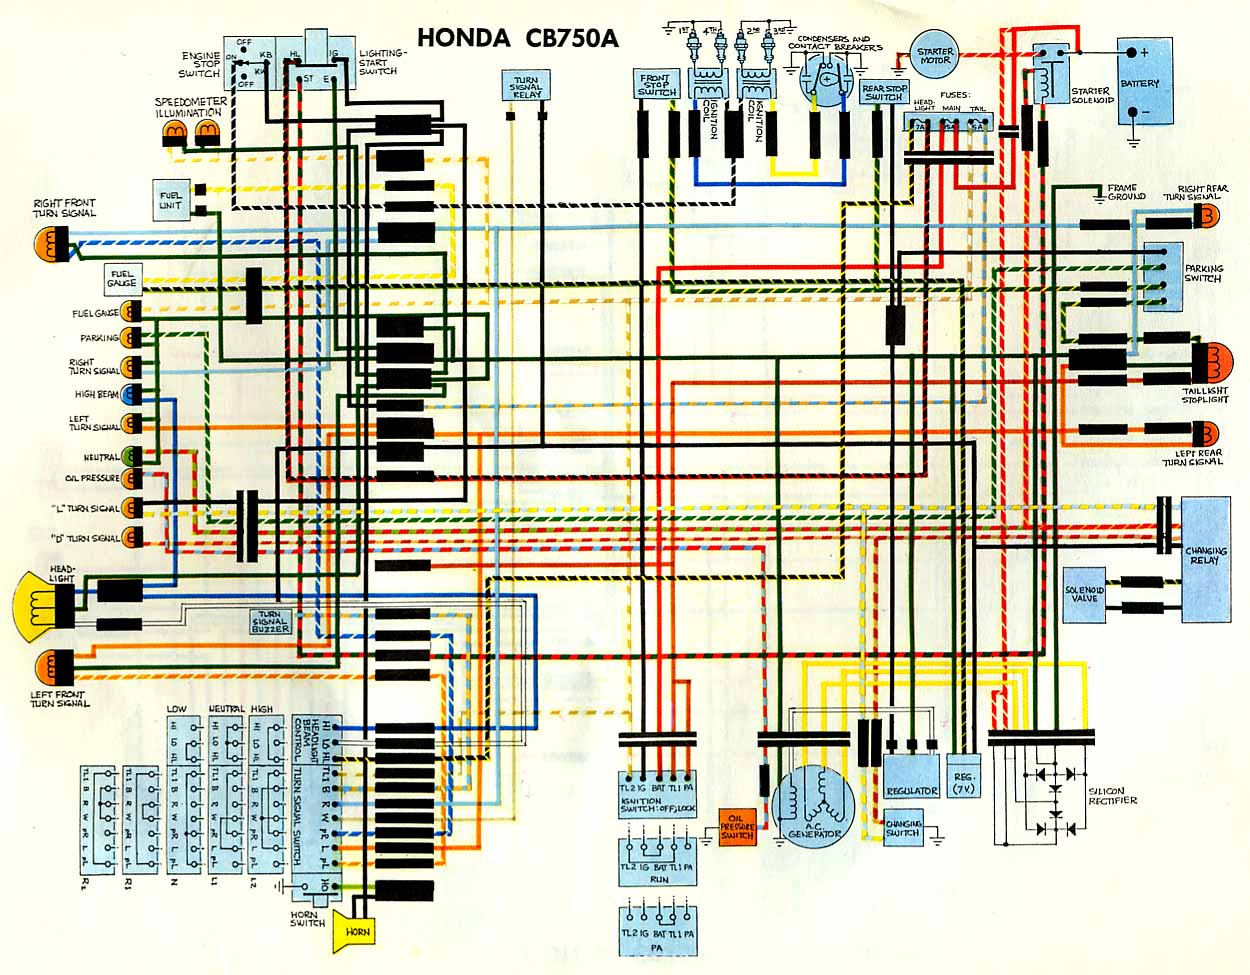 honda cb750 wiring diagram honda wiring diagrams